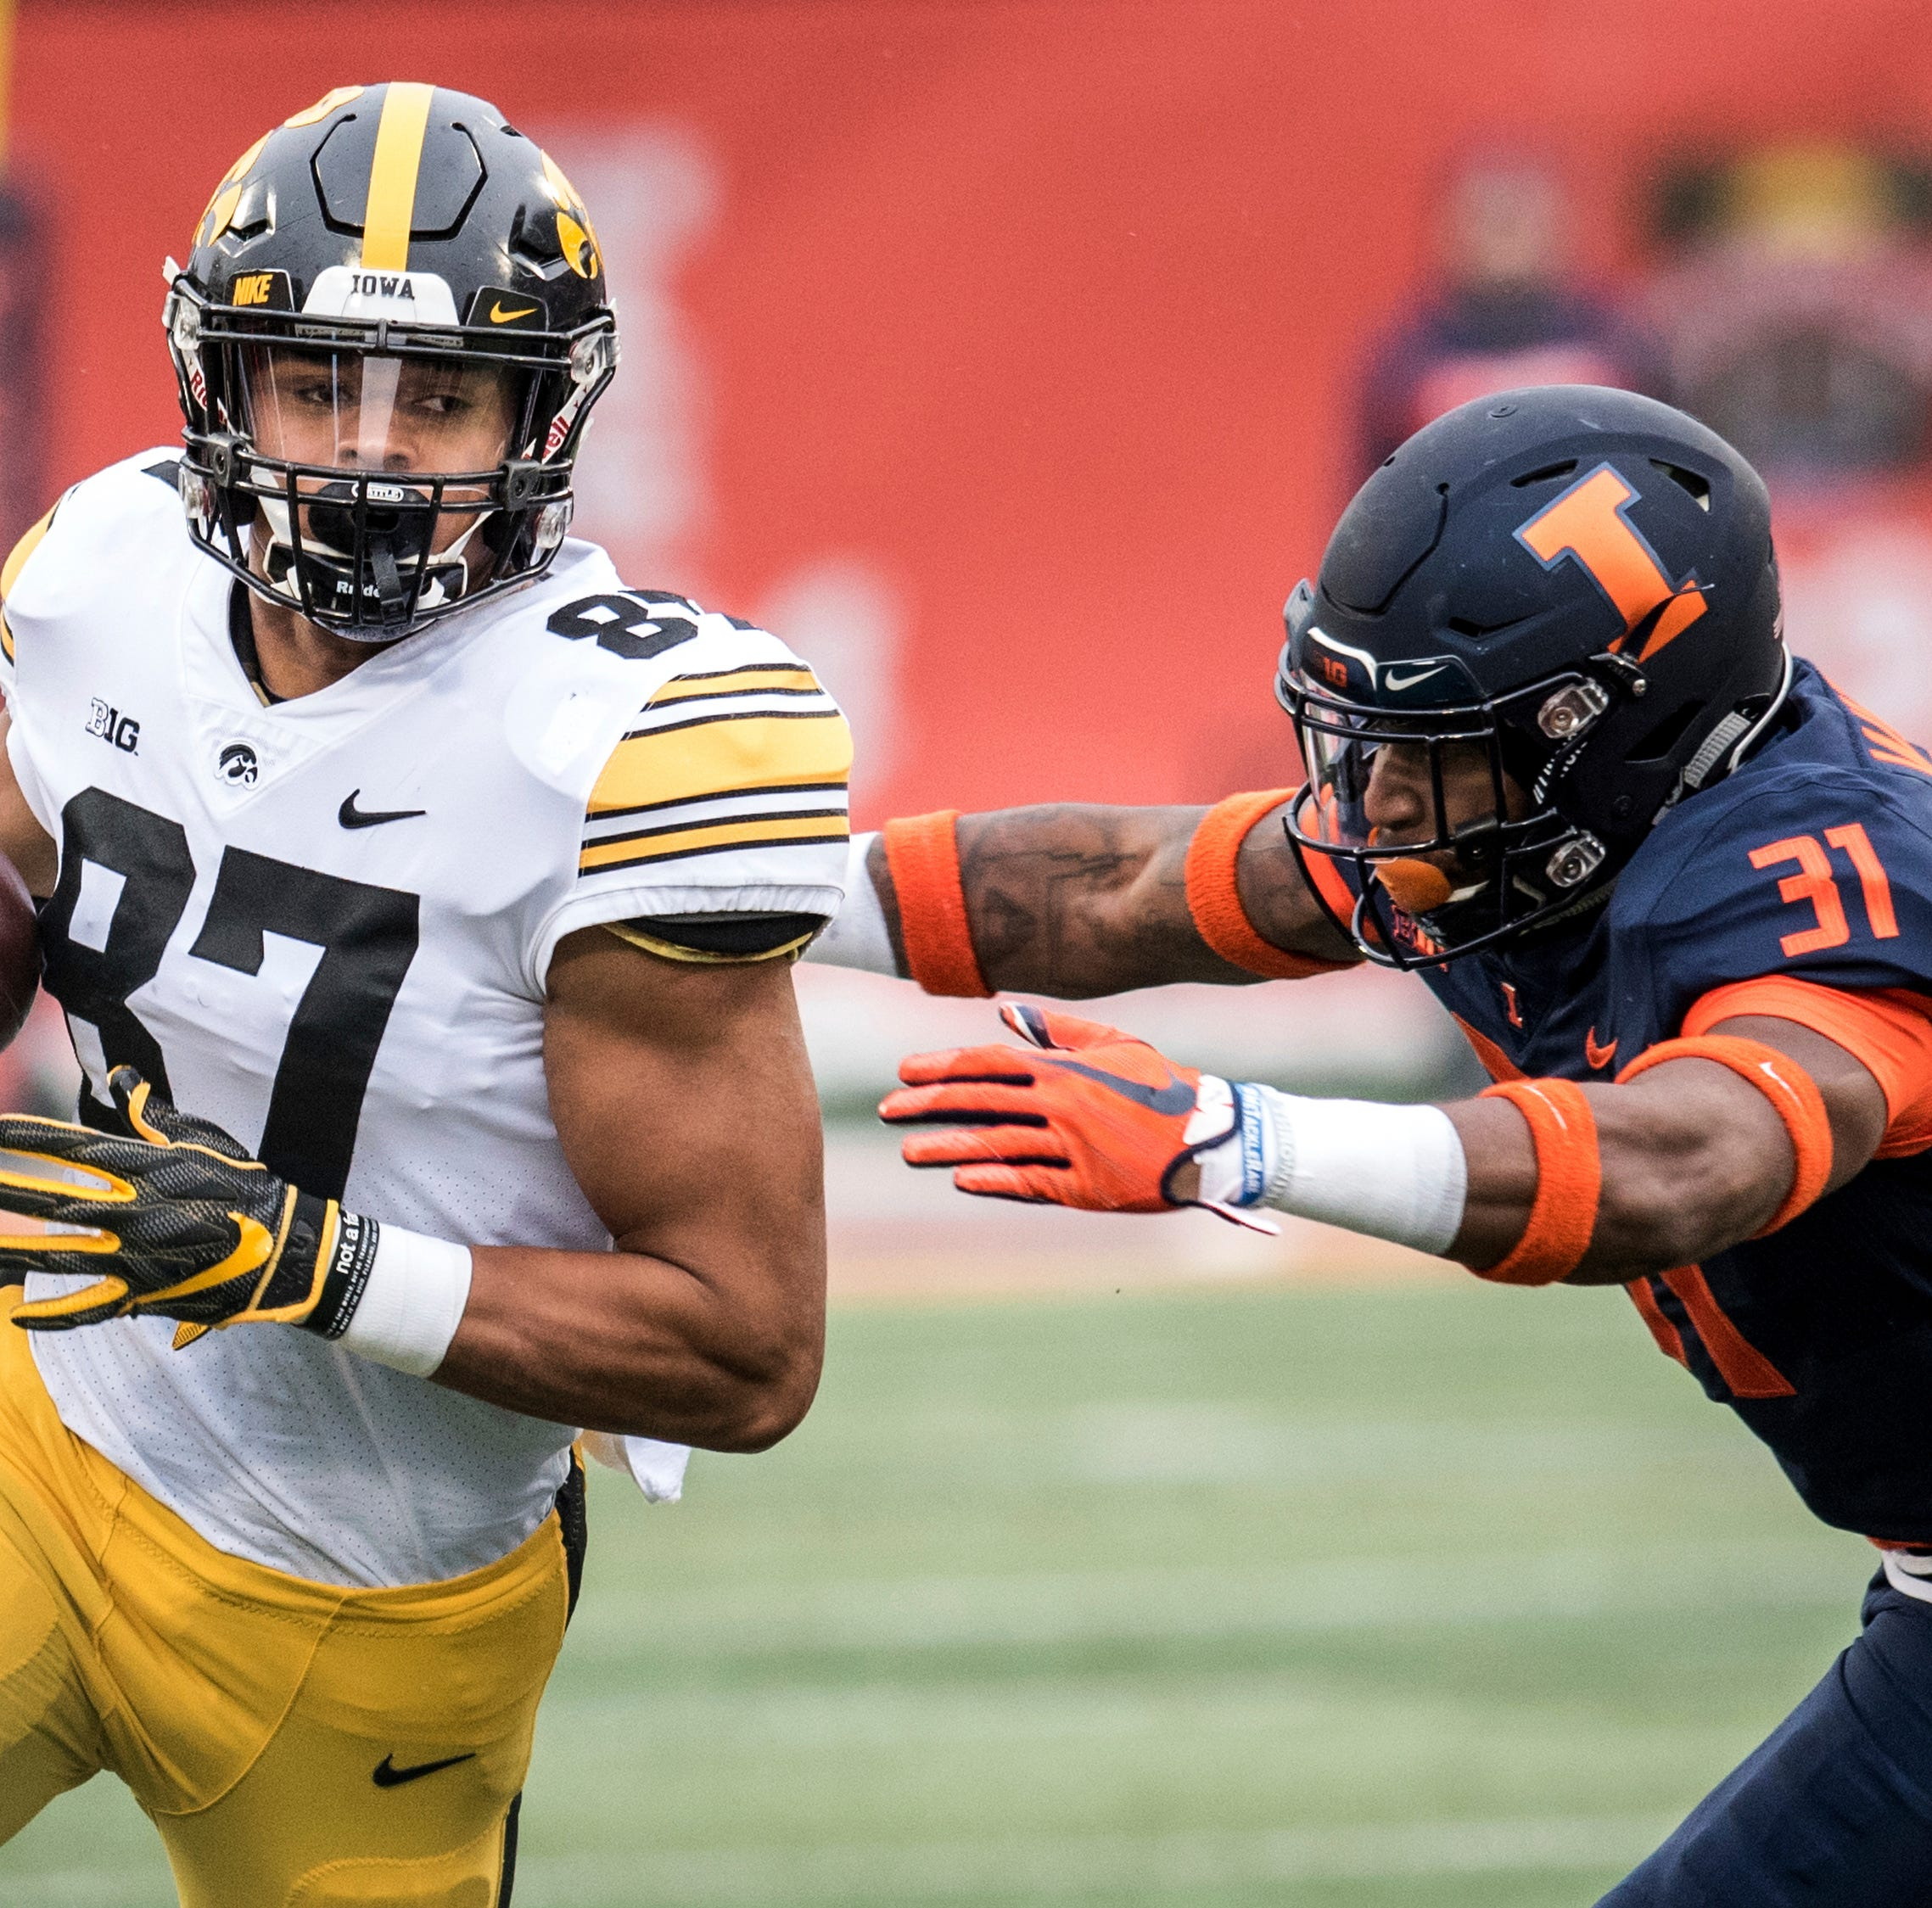 NFL mock draft: How could trades impact former Iowa TEs T.J. Hockenson, Noah Fant?